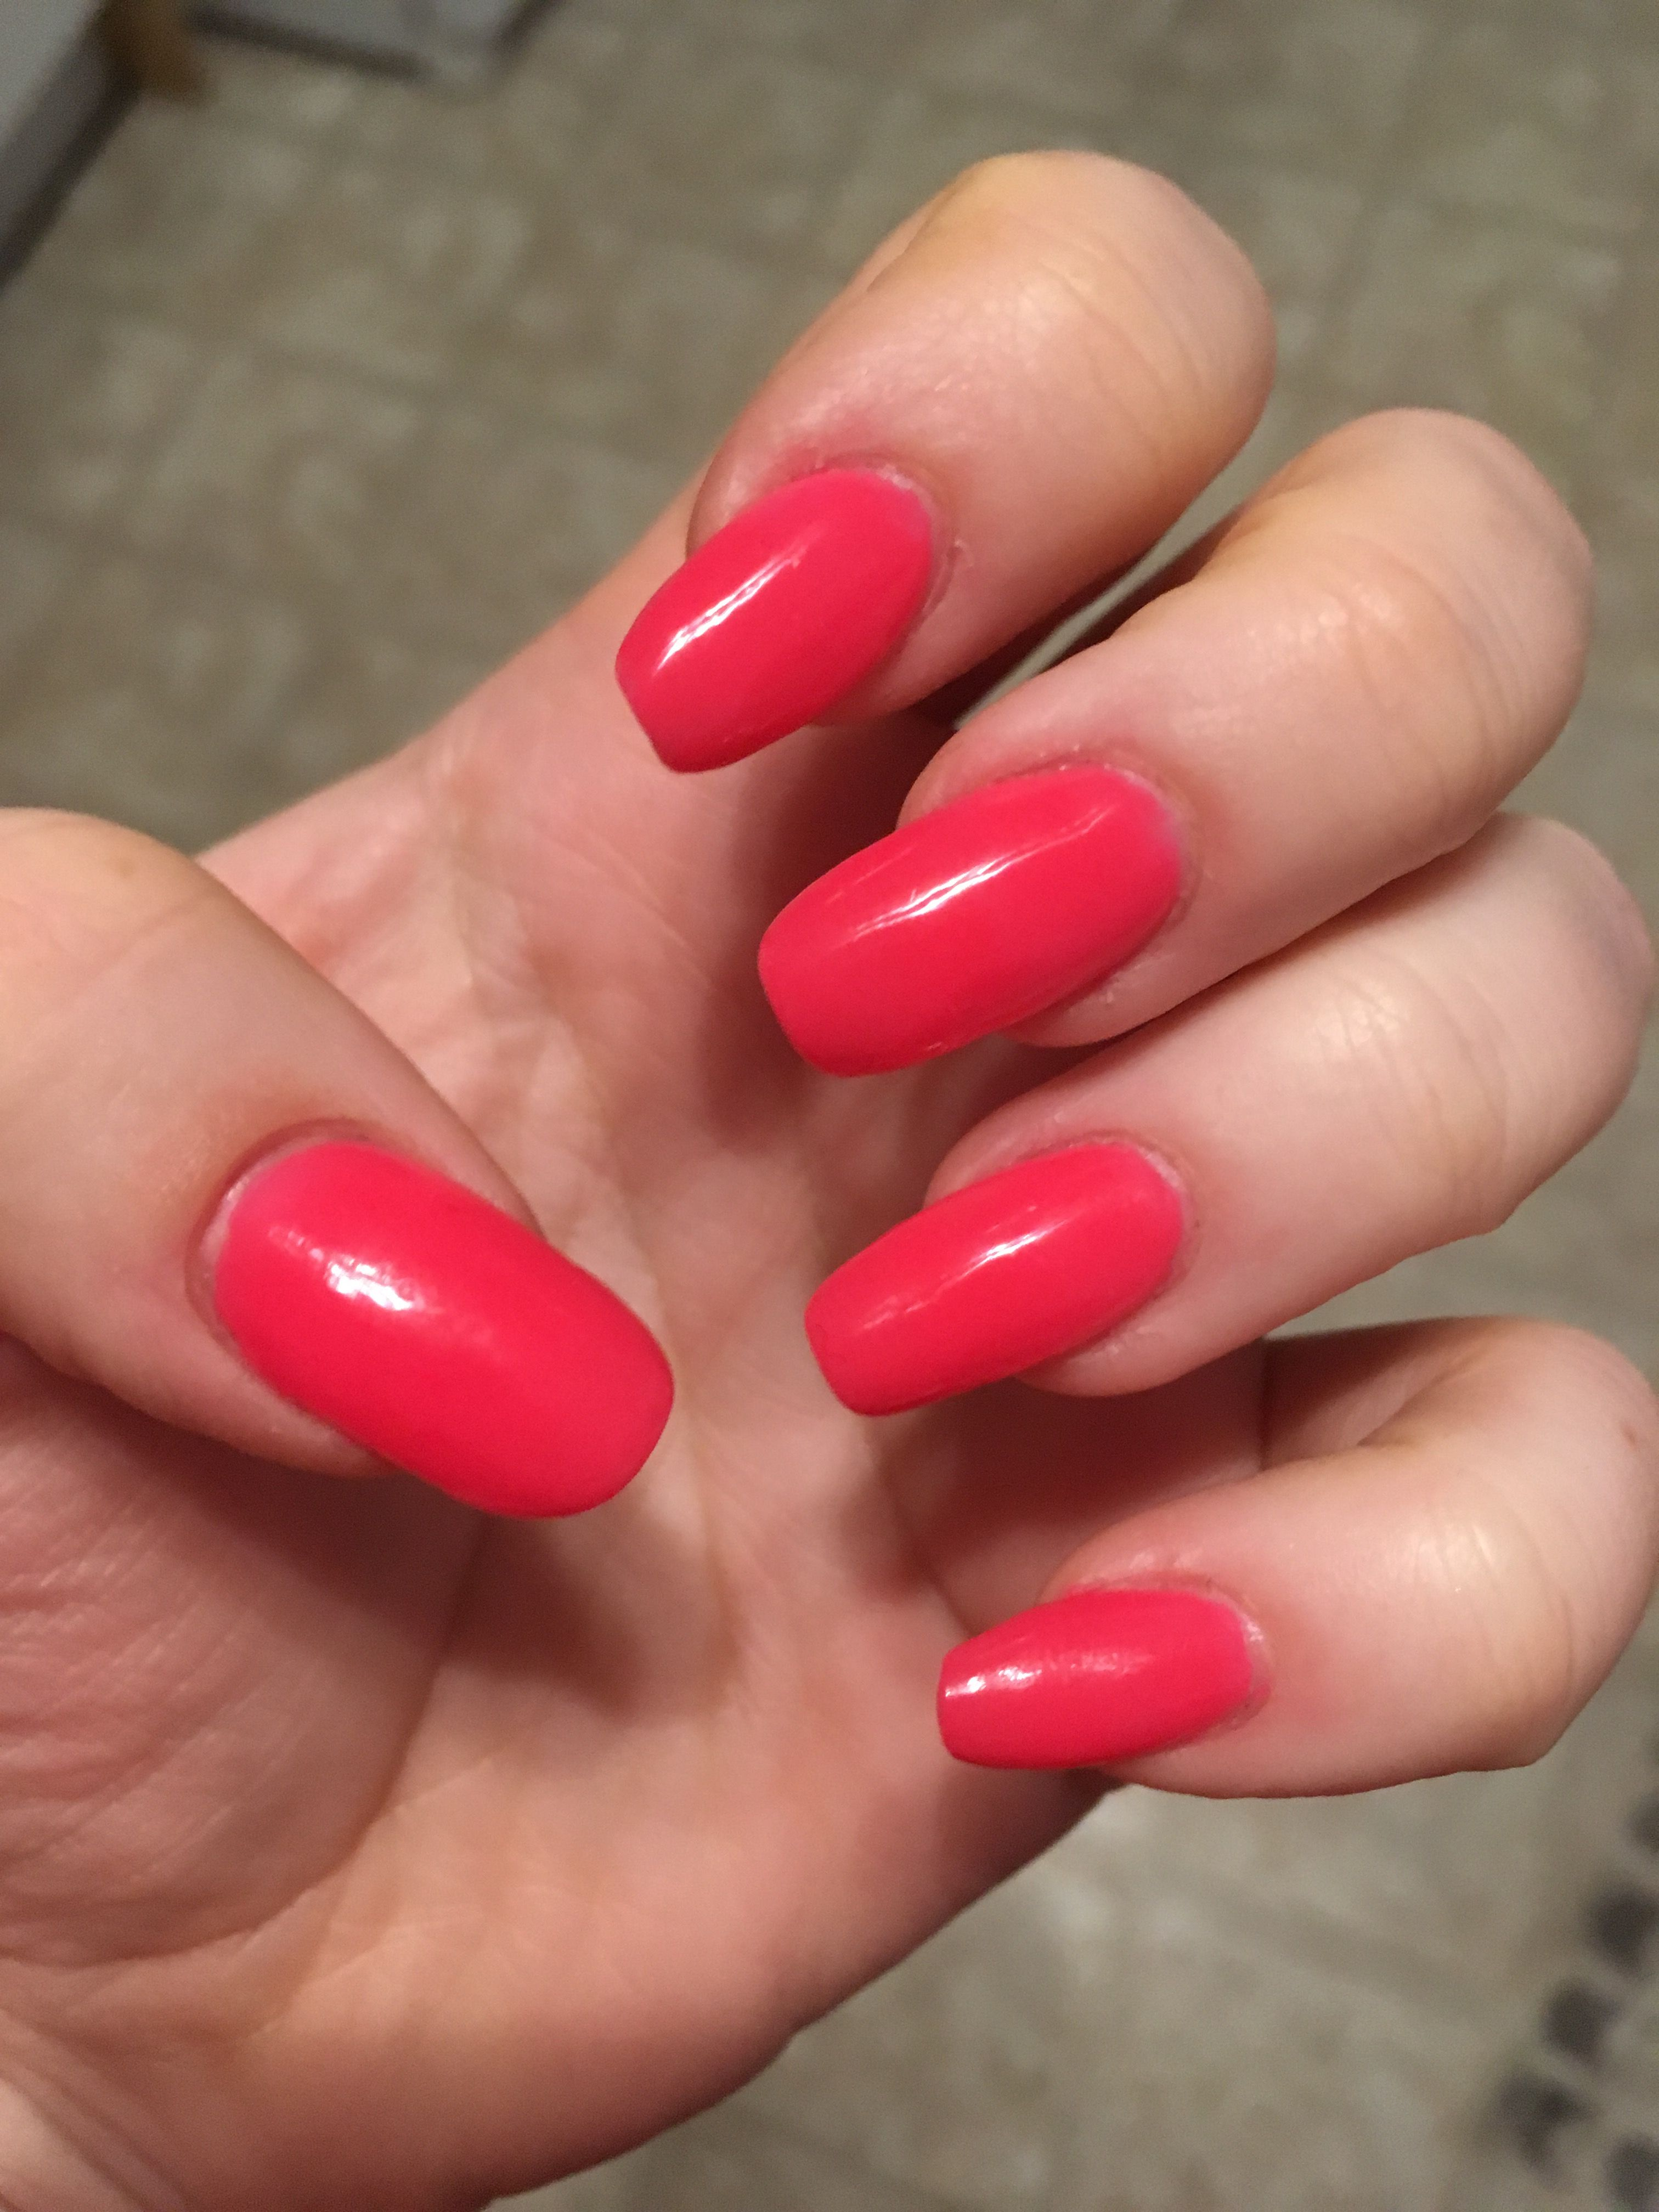 Asp Quot Passionate Pink Quot From The Asp Color Acrylic Quick Dip Kit A Bright Coral Y Pink I Don T